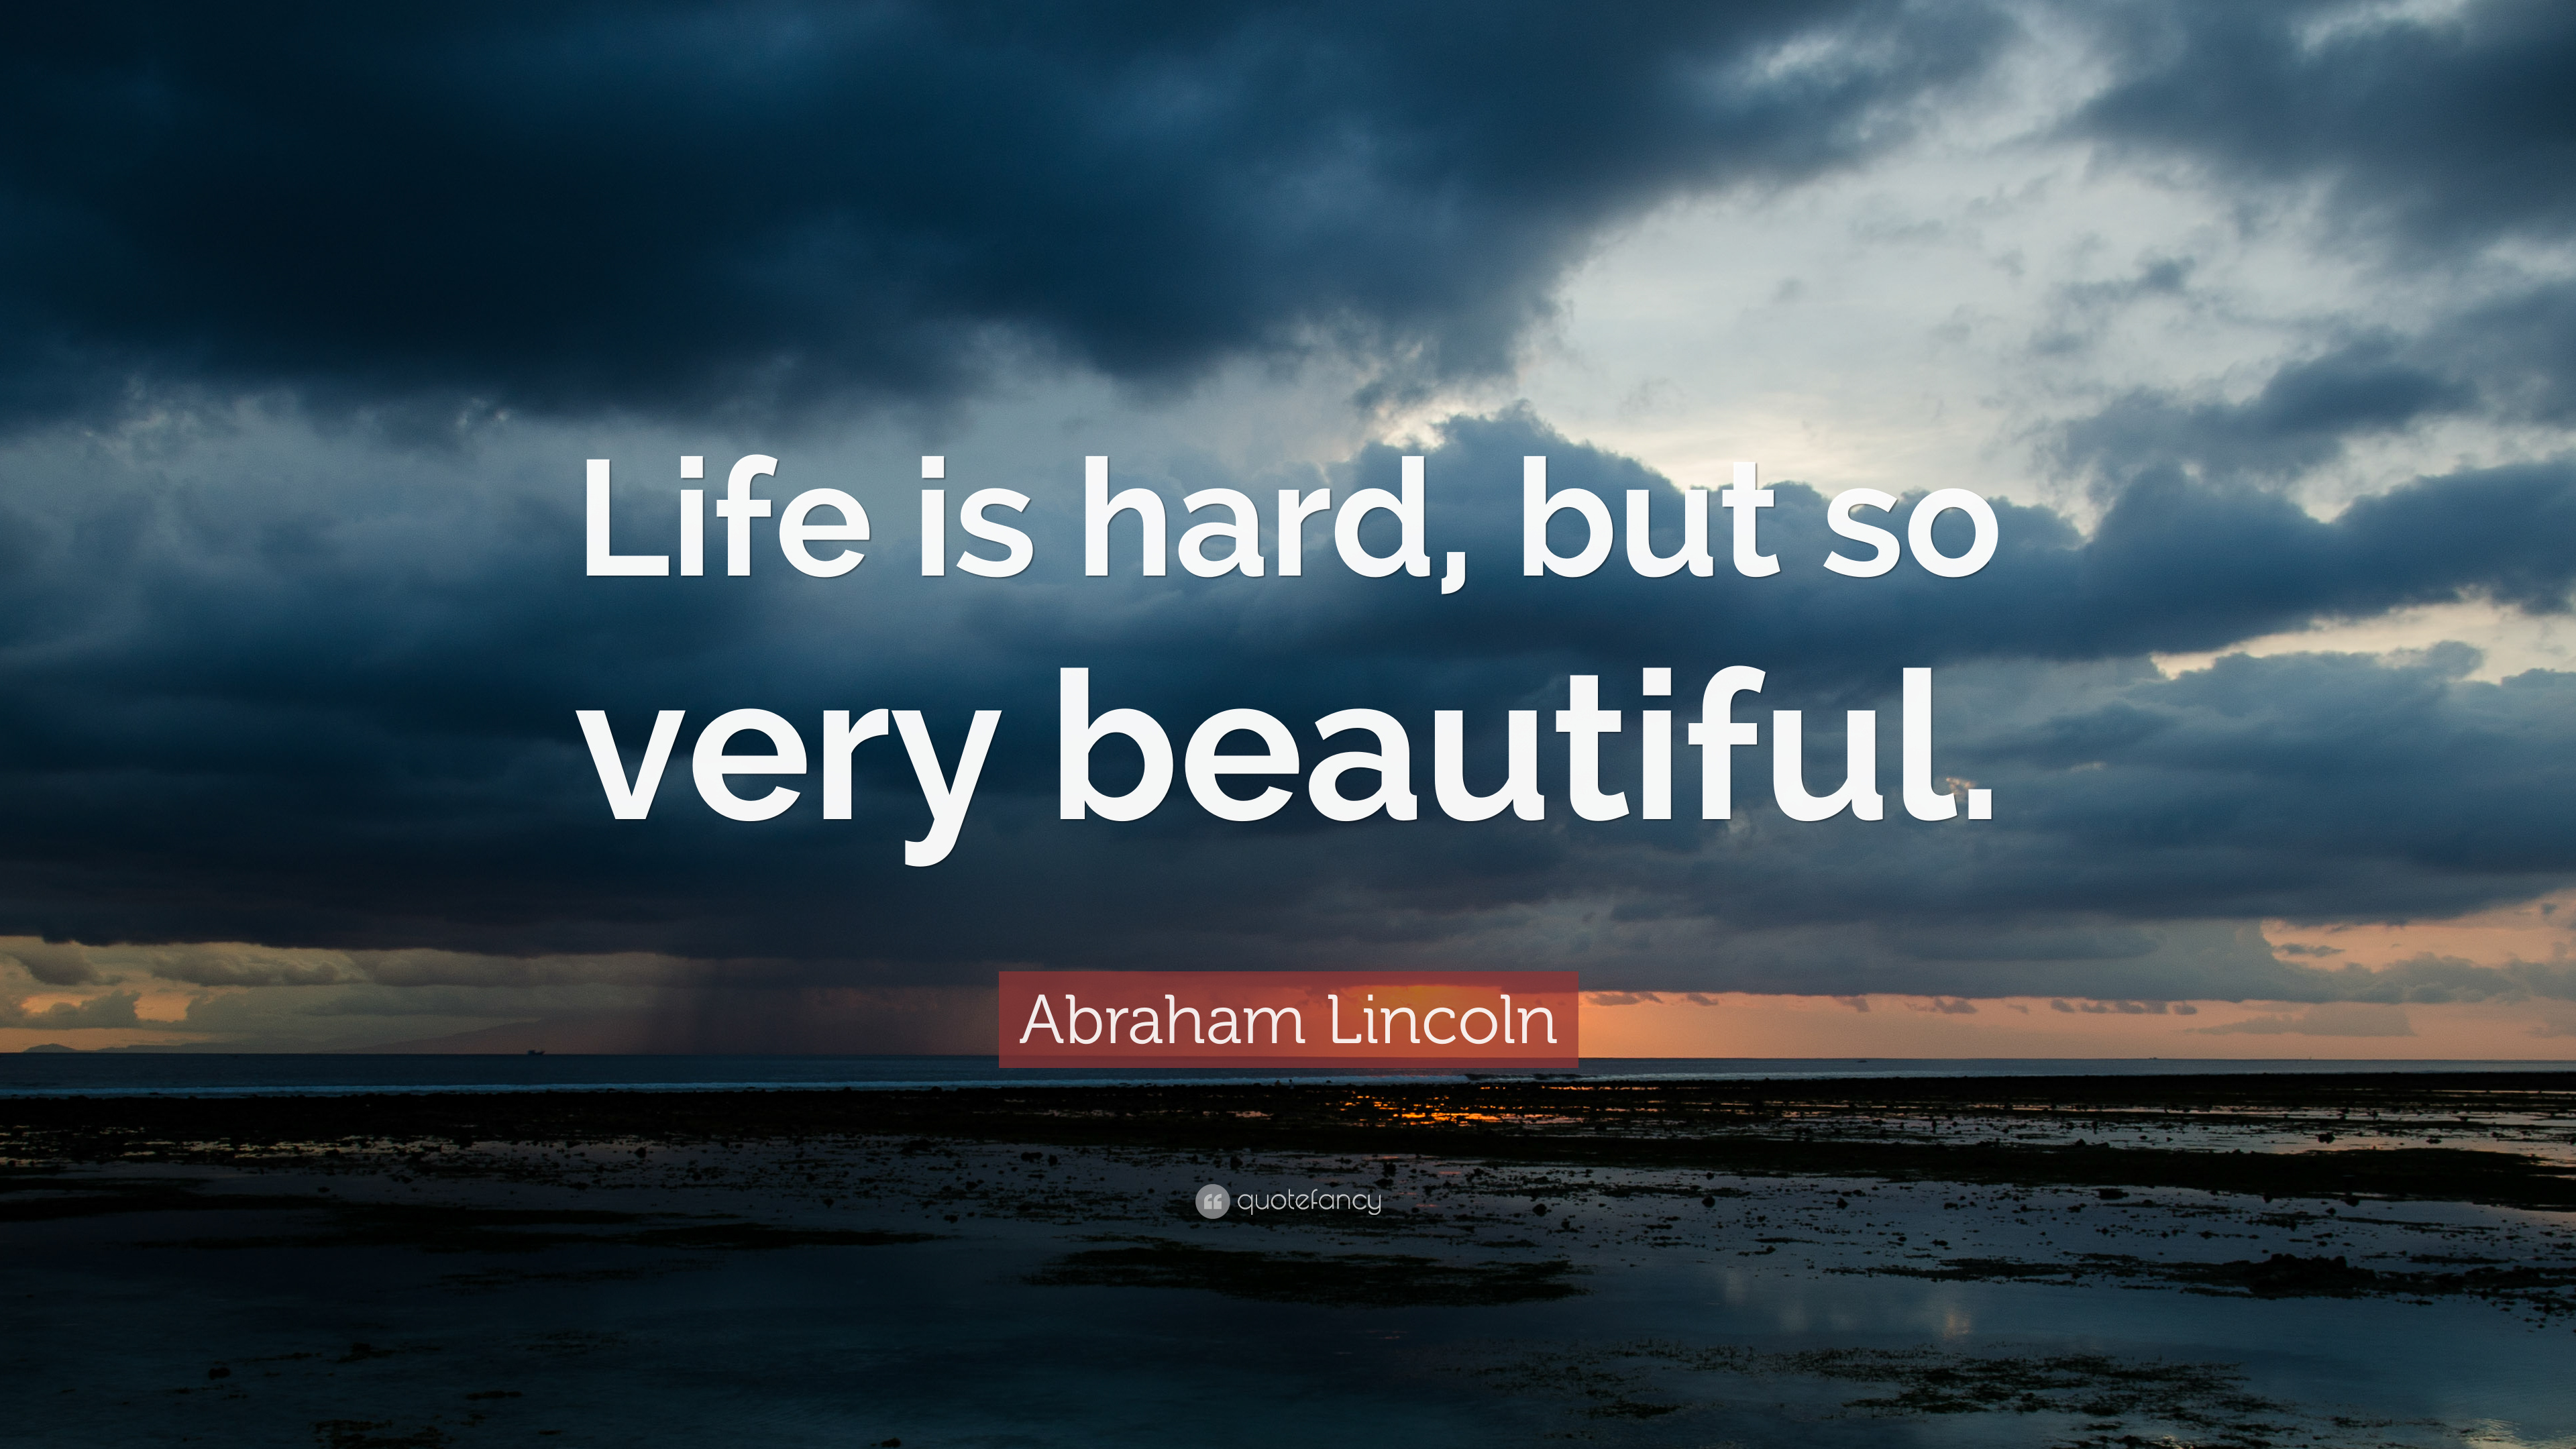 Abraham Lincoln Quote: U201cLife Is Hard But So Very Beautiful.u201d